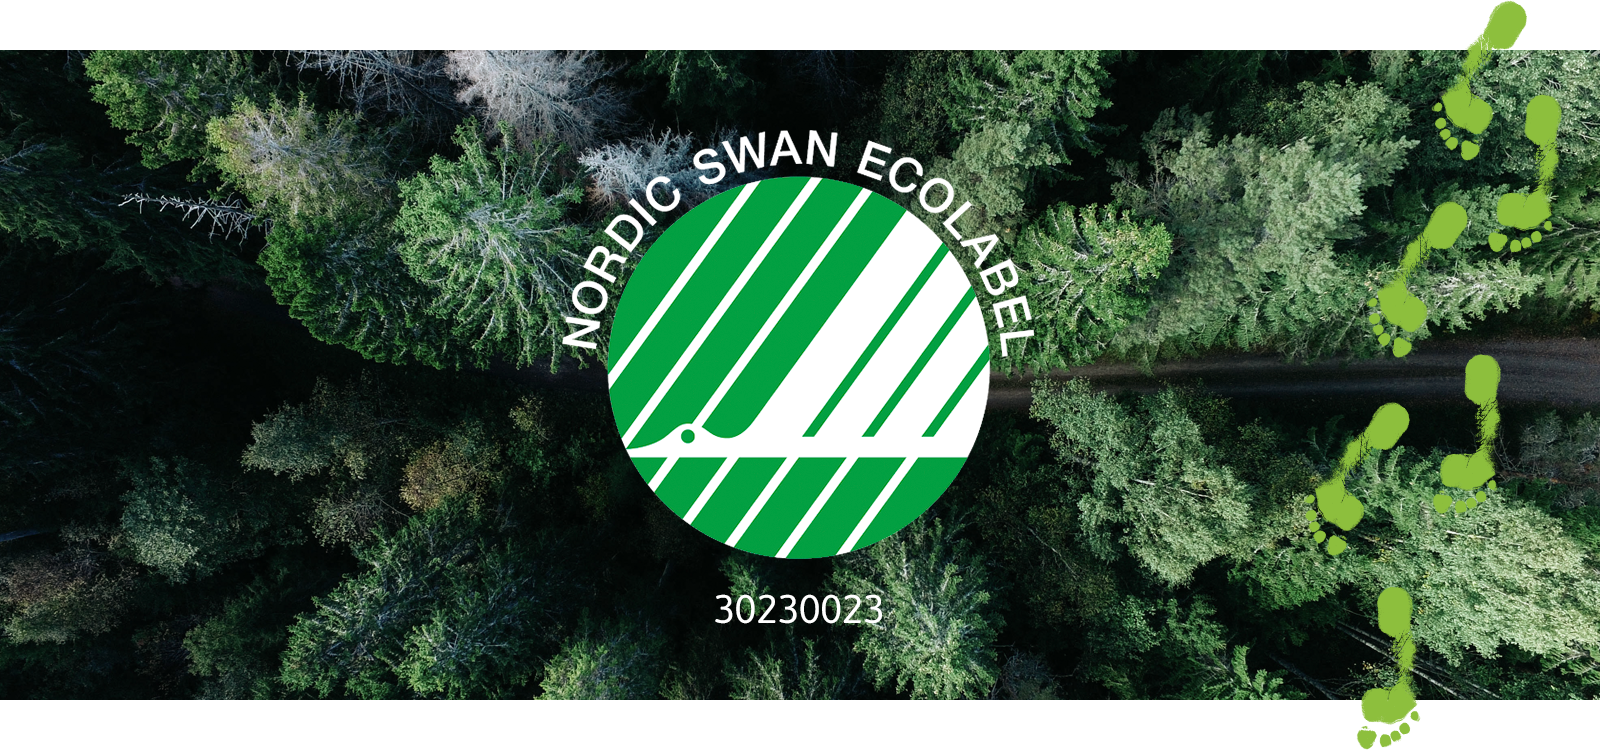 A bird's eye view of a coniferous forest, with a path running through it. Superimposed over the image is the green and white Nordic Swan logo, depicting a swan in flight.